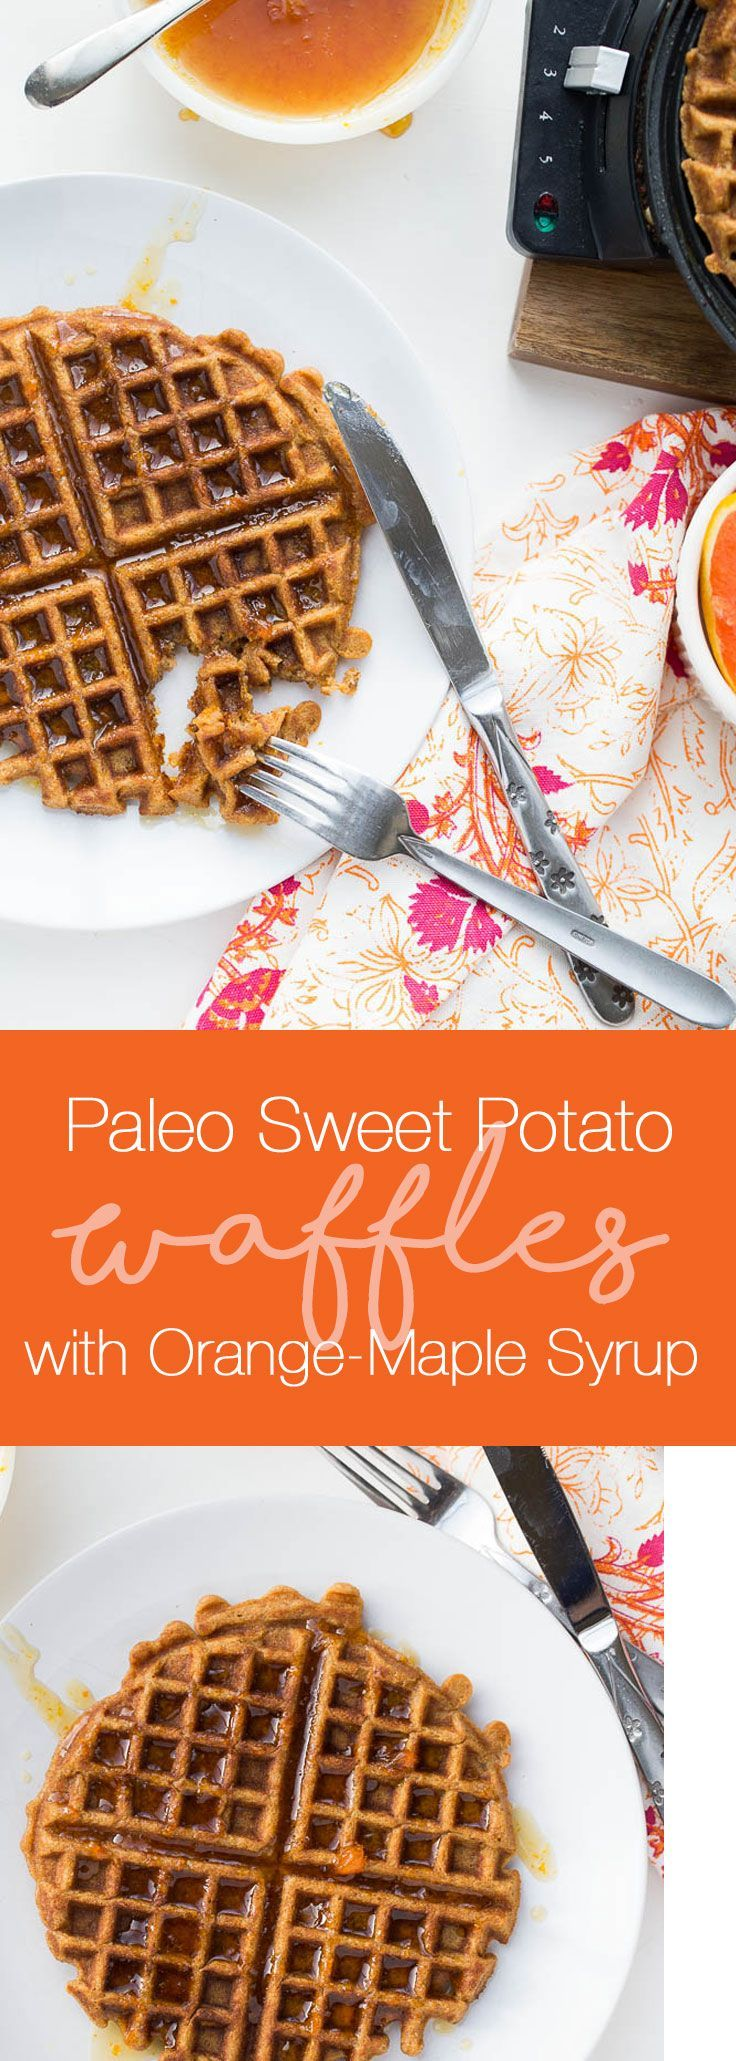 Paleo Sweet Potato Waffles with Orange-Maple Syrup | paleo recipes | waffle recipes | sweet potato recipes | gluten-free recipes | grain-free recipes | http://perrysplate.com